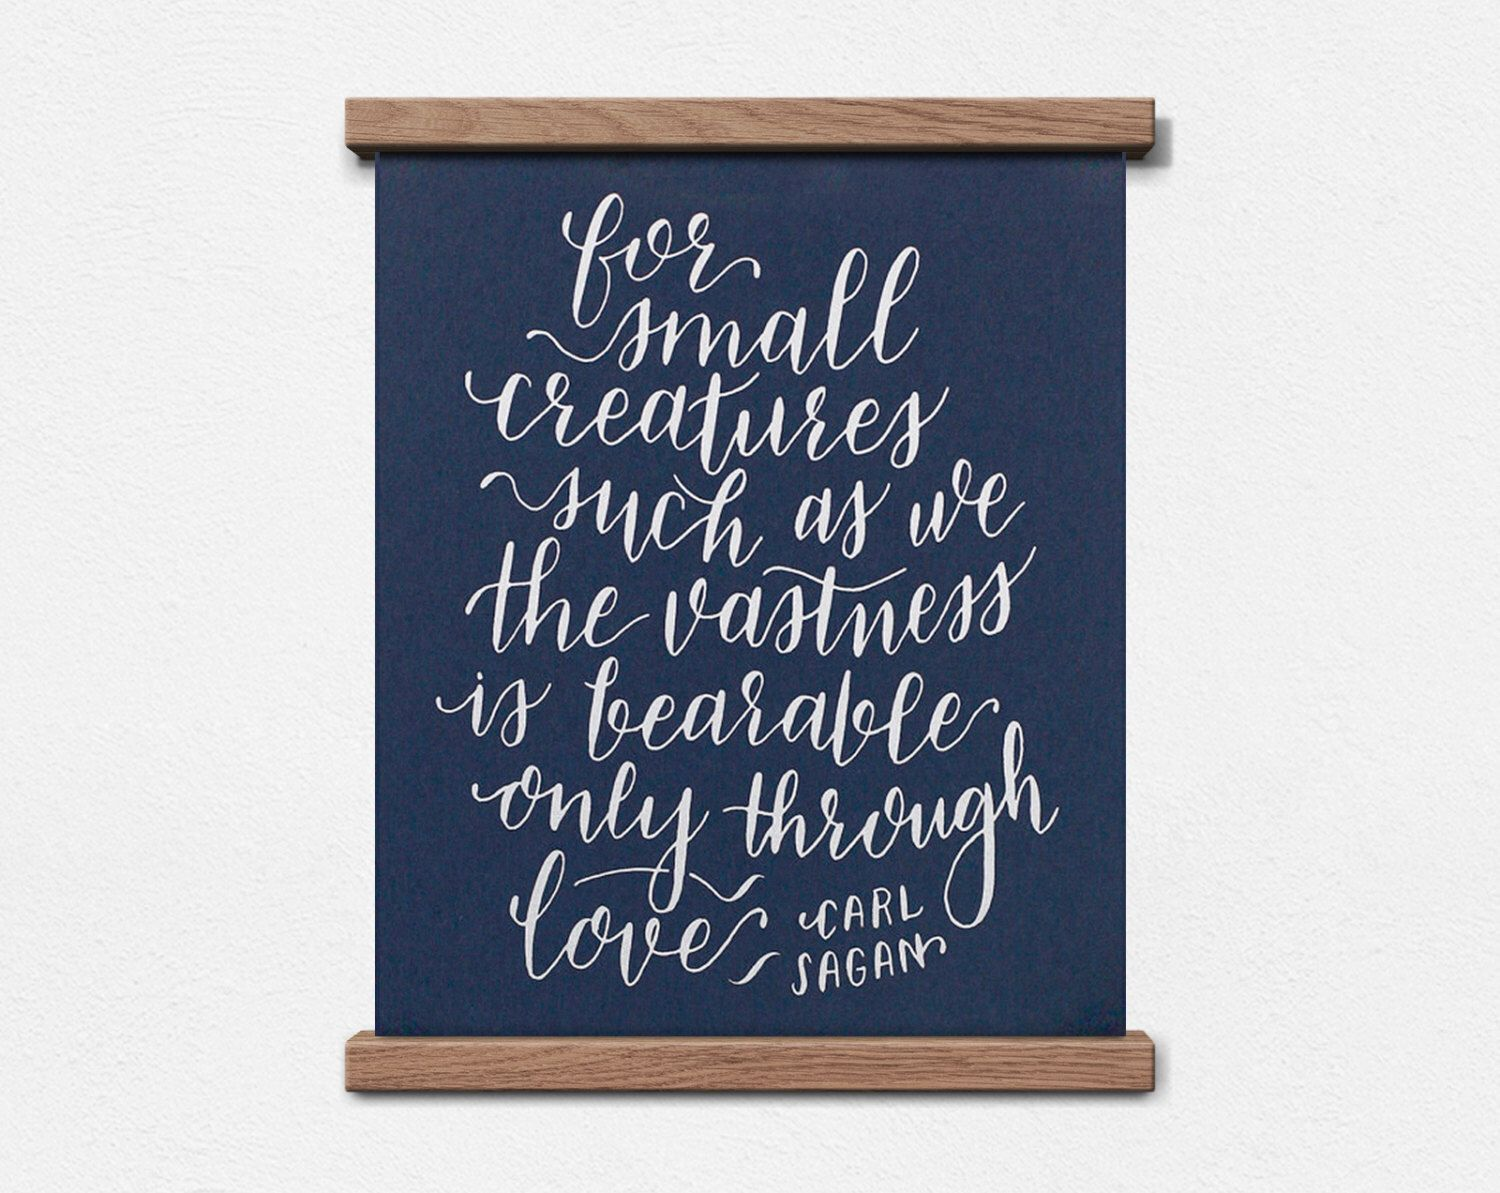 Carl Sagan Love Quote Mesmerizing Carl Sagan Love Quote Calligraphy 8 X 10 Screen Print.